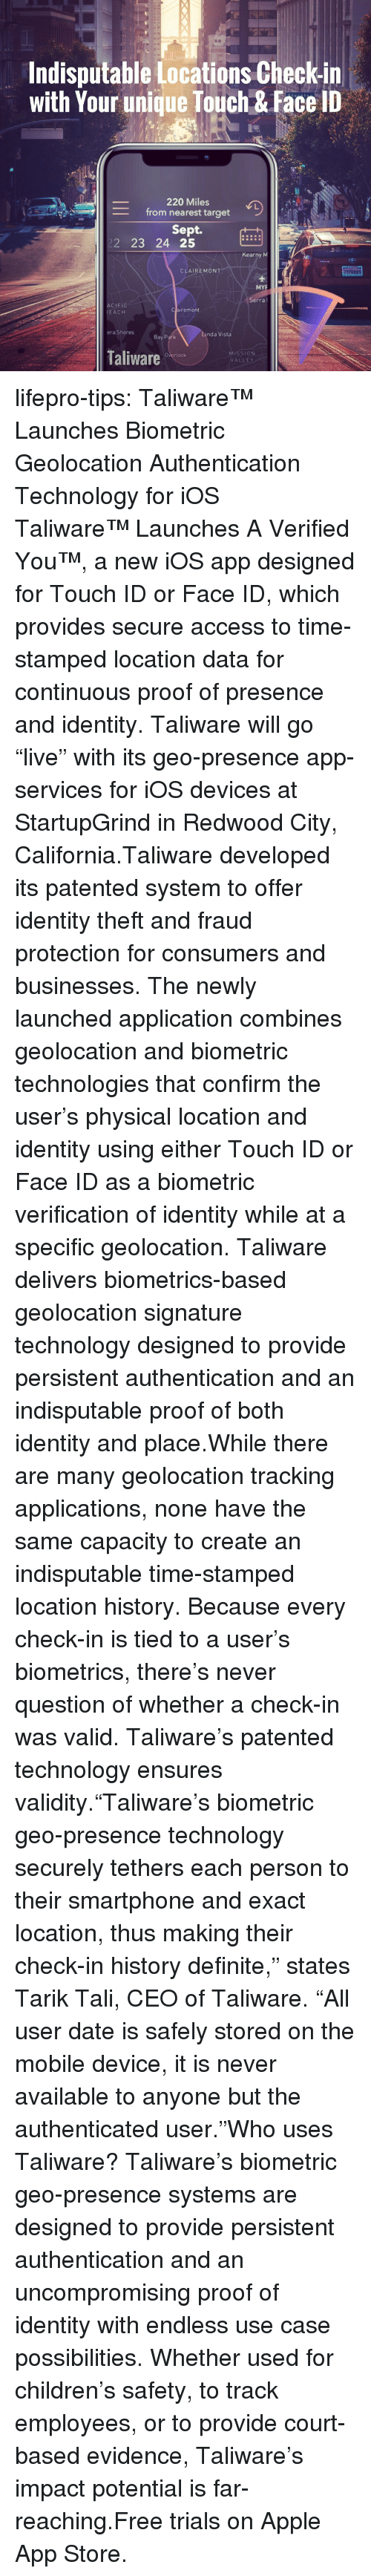 """identity theft: Aa  Indisputable Locations Check-in  with Your unique Touch & Face ID  220 Miles  from nearest target  Sept.  223 24 525t  Kearny M  CLAIREMONT  YPRB89  MYF  ACIFIC  EACH  C airemont  era Shores  nda Vista  Bay Park  Taliwarerict  MISSION  VALLEY lifepro-tips: Taliware™ Launches Biometric Geolocation Authentication Technology for iOS   Taliware™  Launches A Verified You™, a new iOS app designed for Touch ID or Face  ID, which provides secure access to time-stamped location data for  continuous proof of presence and identity. Taliware will go """"live"""" with  its geo-presence app-services for iOS devices at StartupGrind in Redwood  City, California.Taliware developed its patented system to  offer identity theft and fraud protection for consumers and businesses.  The newly launched application combines geolocation and biometric  technologies that confirm the user's physical location and identity  using either Touch ID or Face ID as a biometric verification of identity  while at a specific geolocation. Taliware delivers biometrics-based  geolocation signature technology designed to provide persistent  authentication and an indisputable proof of both identity and place.While  there are many geolocation tracking applications, none have the same  capacity to create an indisputable time-stamped location history.  Because every check-in is tied to a user's biometrics, there's never  question of whether a check-in was valid. Taliware's patented technology  ensures validity.""""Taliware's biometric geo-presence technology  securely tethers each person to their smartphone and exact location,  thus making their check-in history definite,"""" states Tarik Tali, CEO of  Taliware. """"All user date is safely stored on the mobile device, it is  never available to anyone but the authenticated user.""""Who uses  Taliware? Taliware's biometric geo-presence systems are designed to  provide persistent authentication and an uncompromising proof of  identity with endless use case possibil"""